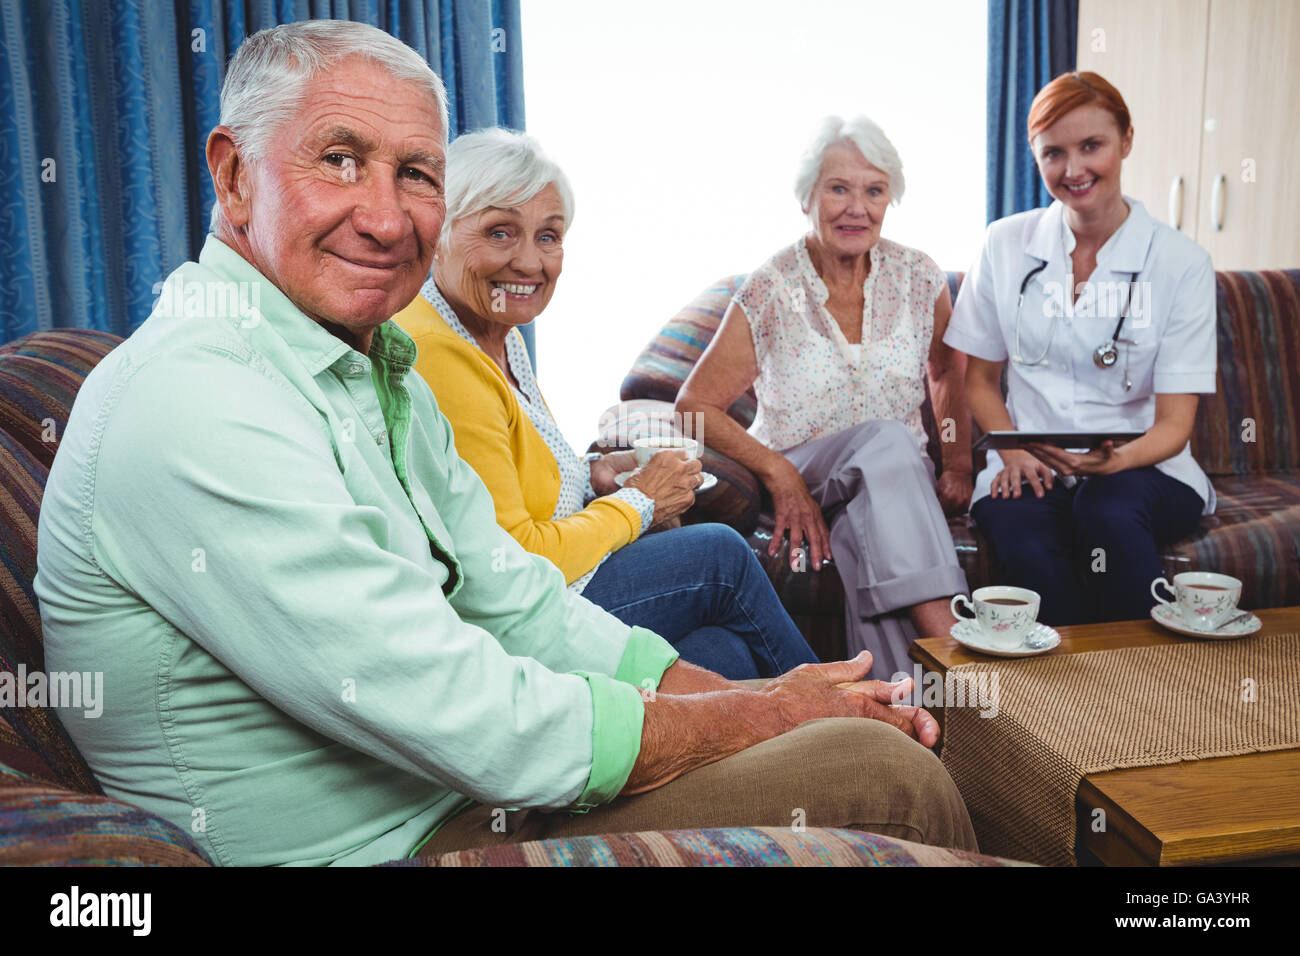 Portrait of smiling retired person looking at the camera - Stock Image